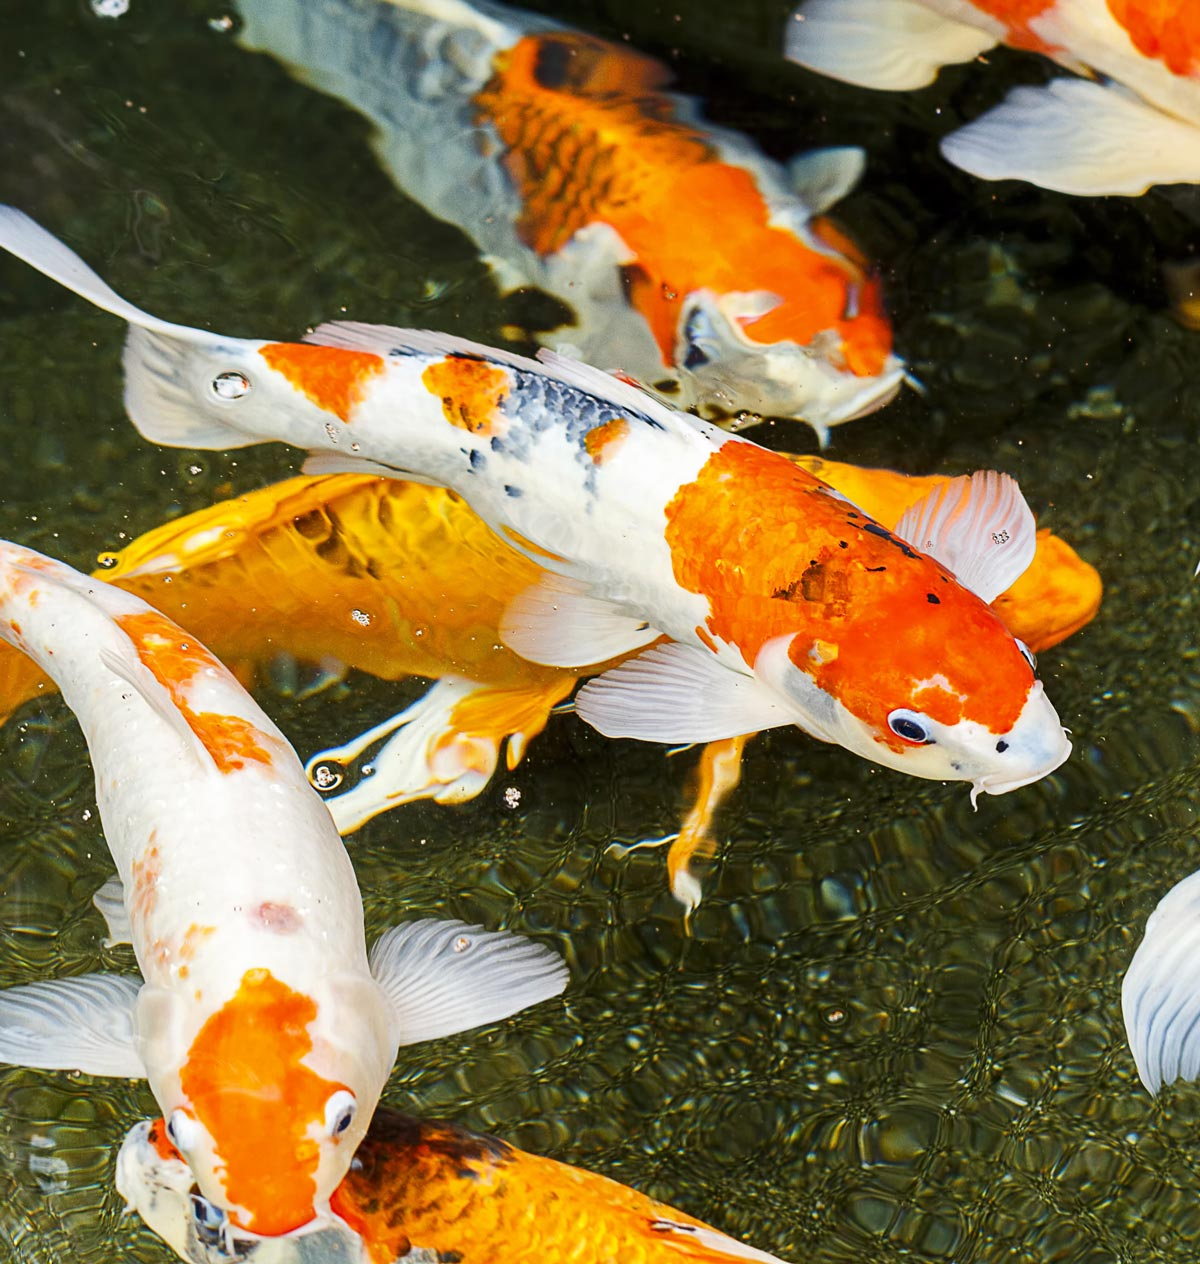 Ask farms your online source of quality koi fish for sale for Koi fish for sale